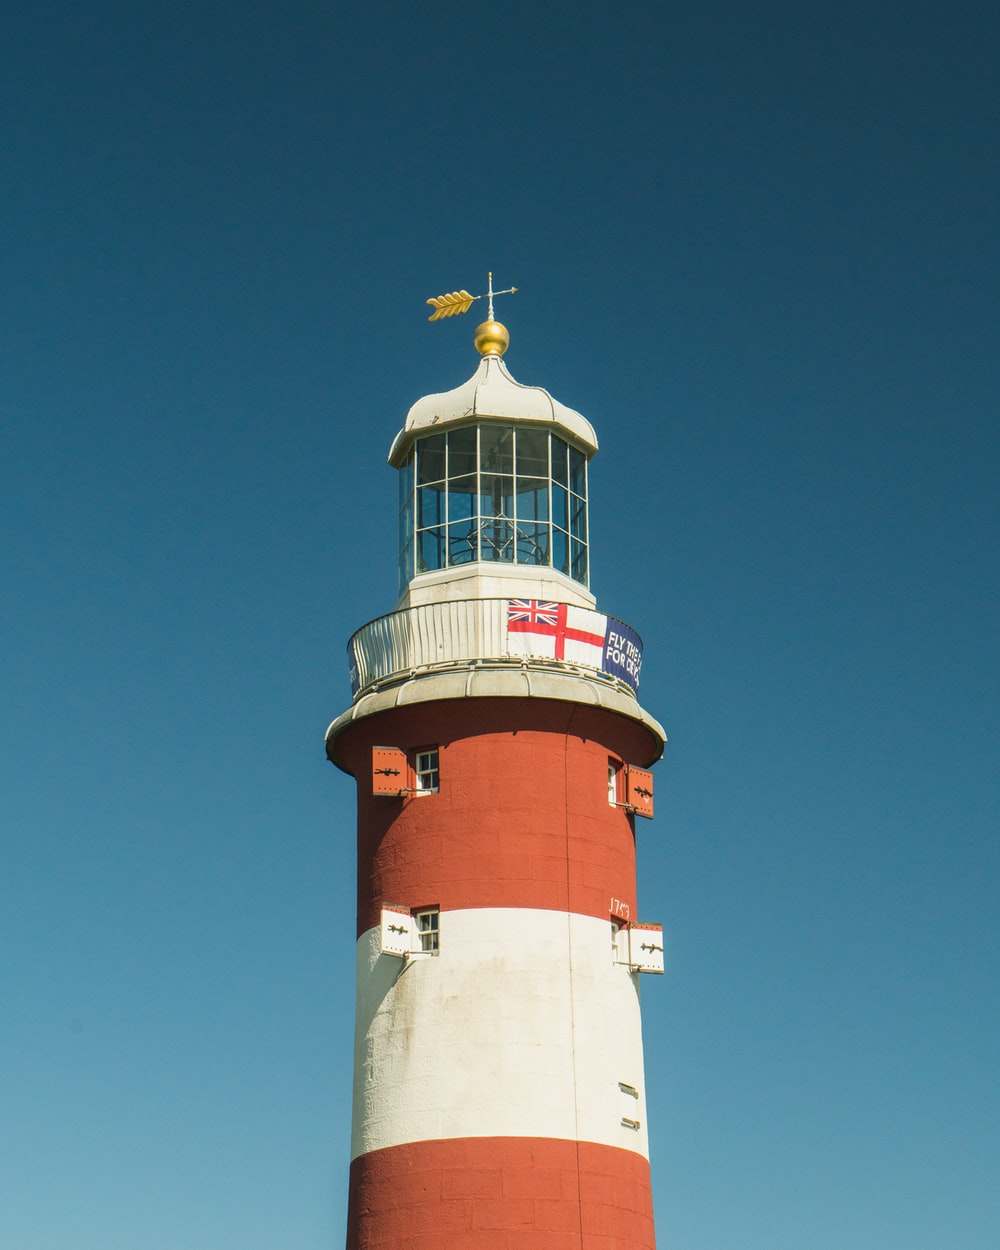 red and white lighthouse during daytime